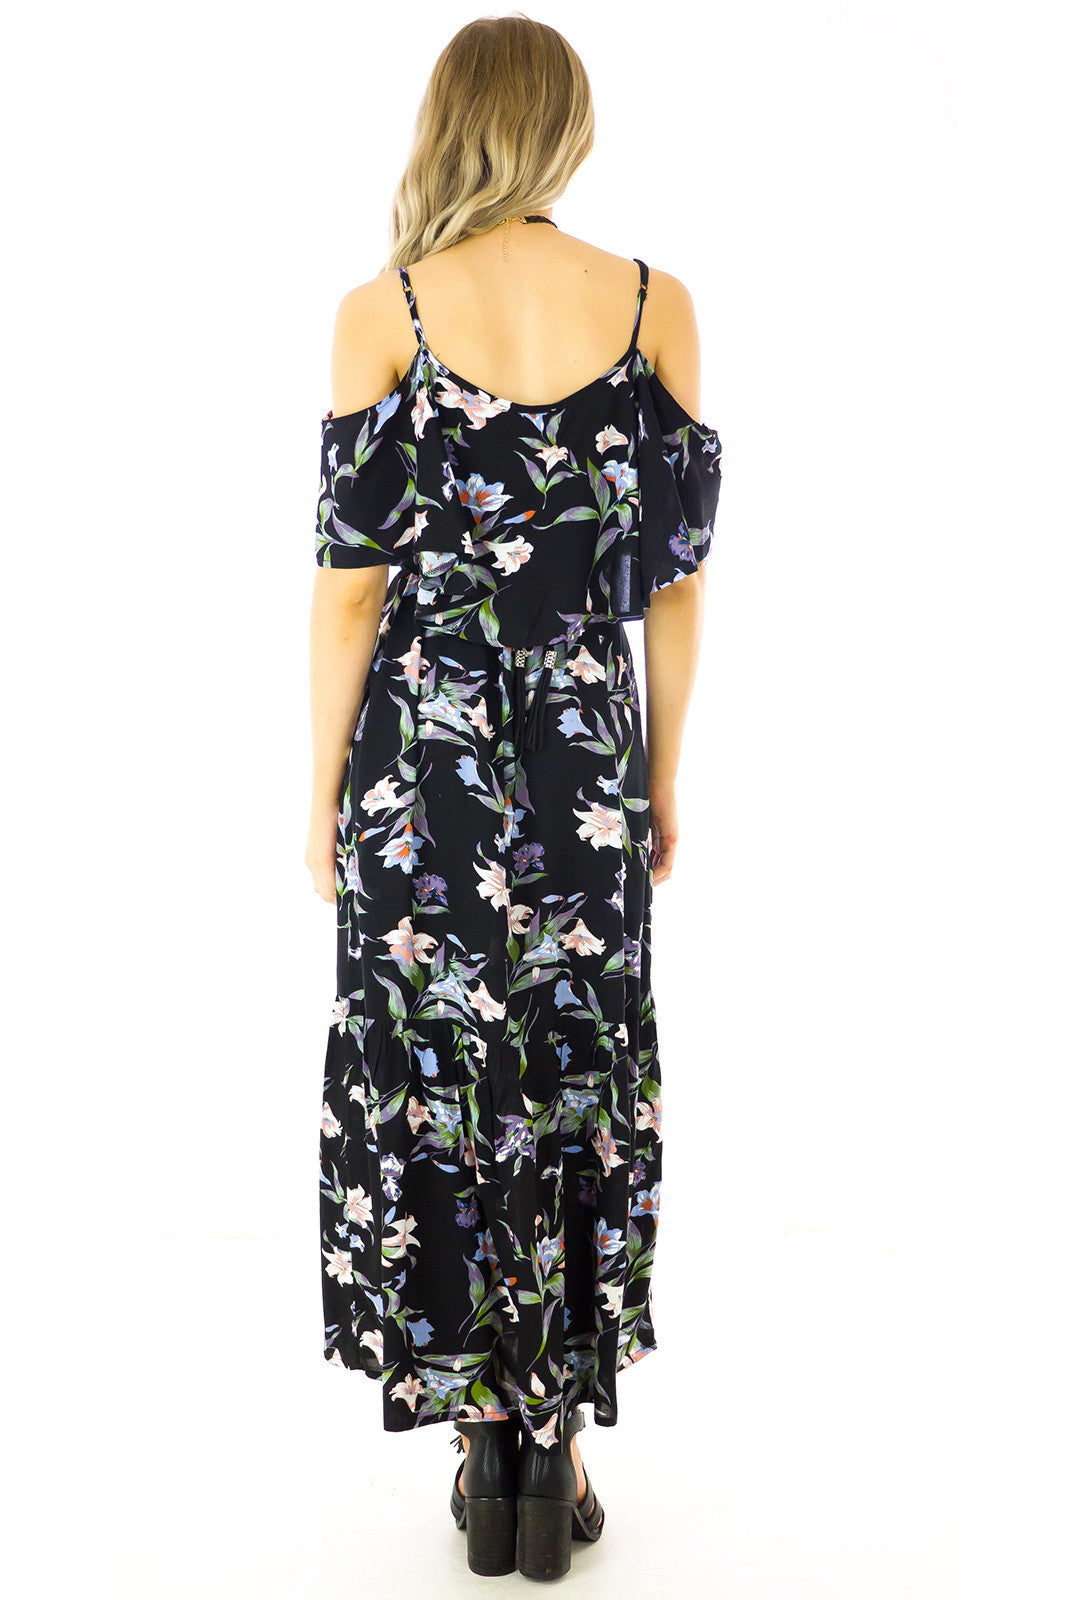 Jessie Maxi Dress Mystic Noir Floral print, cold shoulder style maxi dress floral print